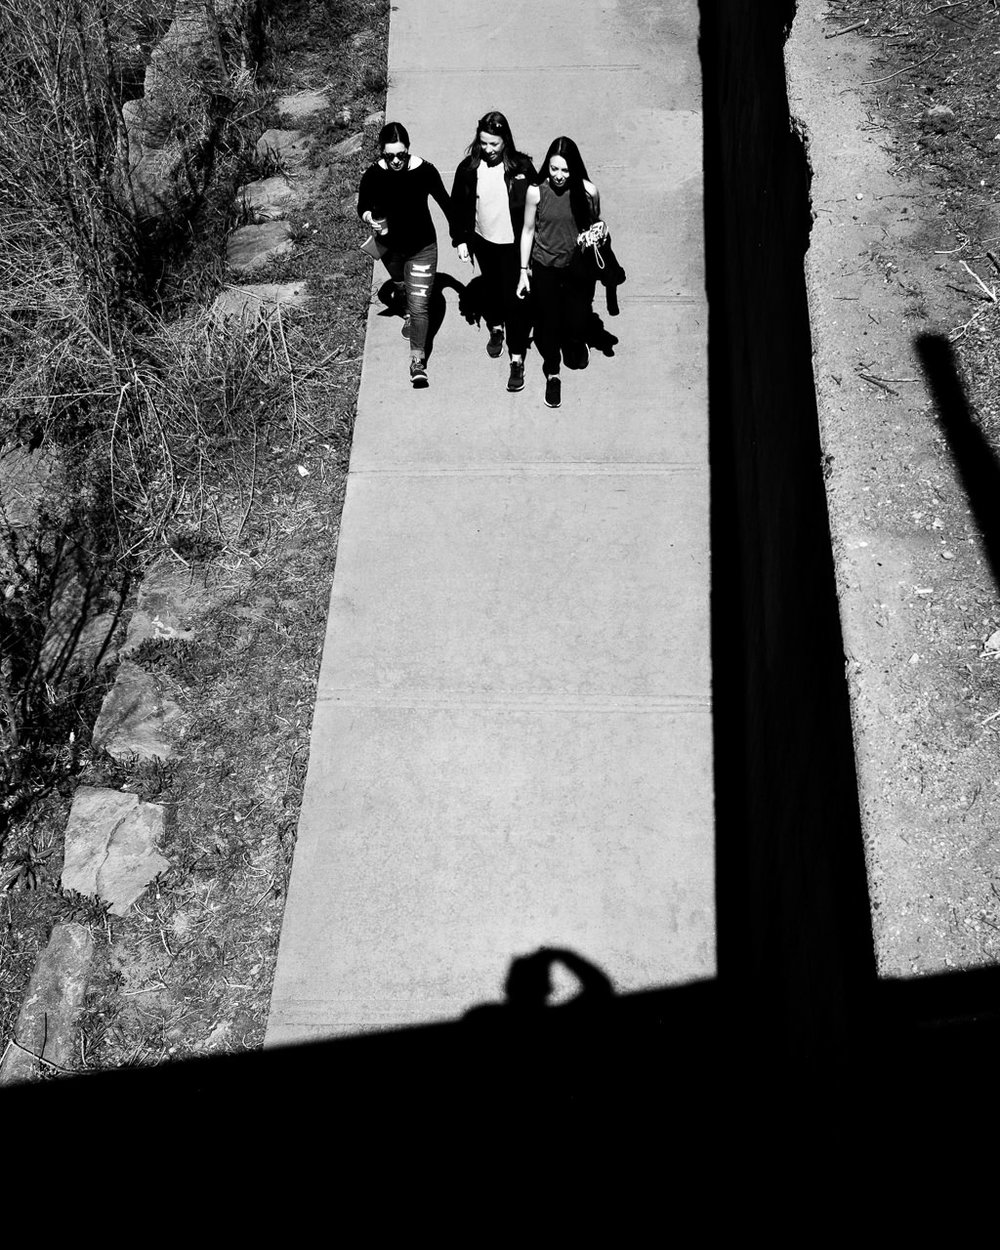 Day 100- 365 Day B&W Photo Challenge - Captured some girls walking along the Cherry Creek Trail from an overhead bridge as you can see my shadow along the walkway. - Fuji X100F., Acros R Film Preset